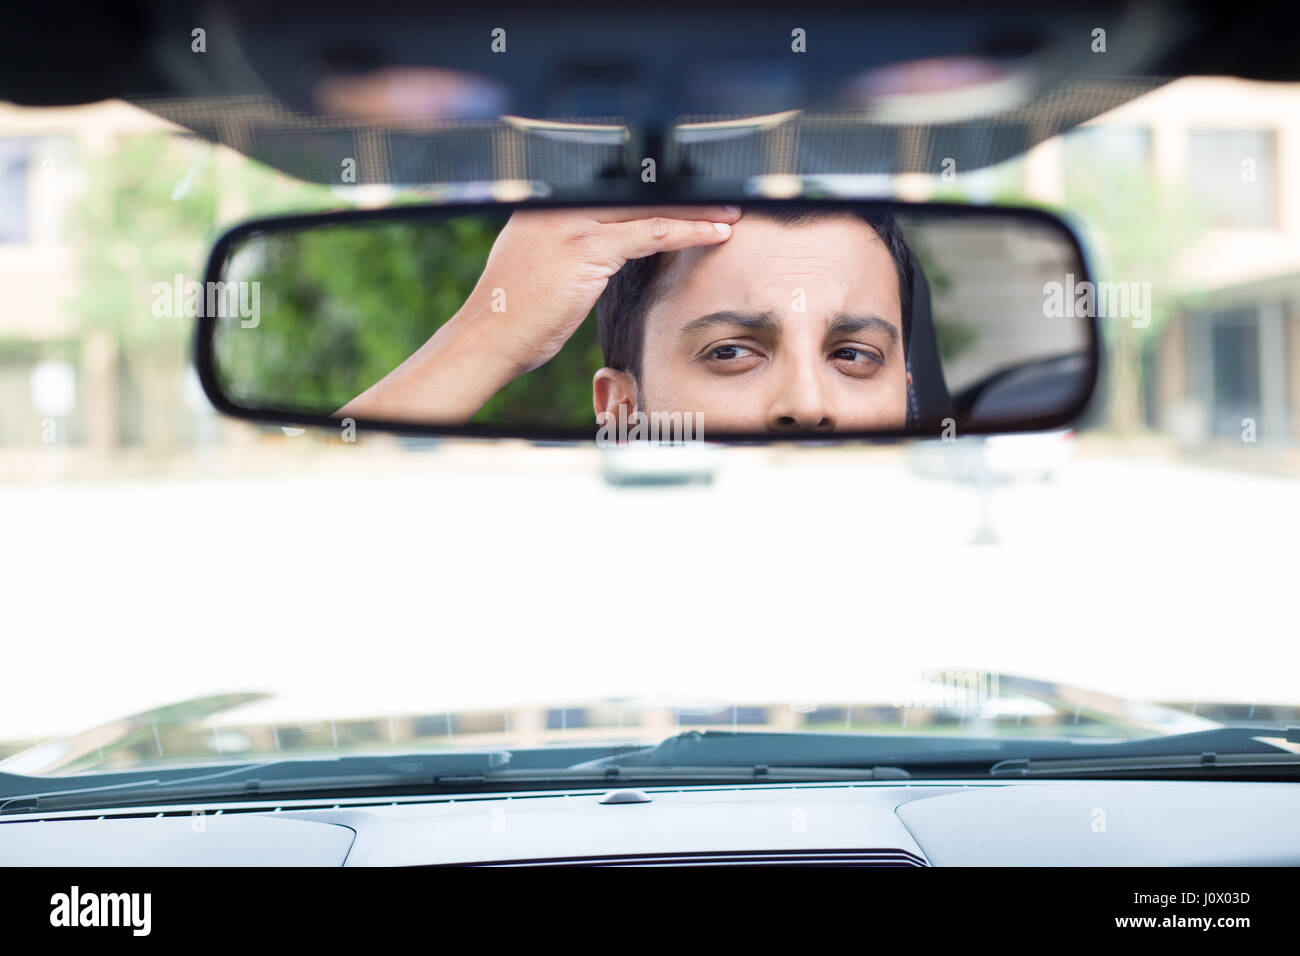 Closeup portrait, funny young man driver looking at rear view mirror looking at hair loss issues widow's peak or Stock Photo